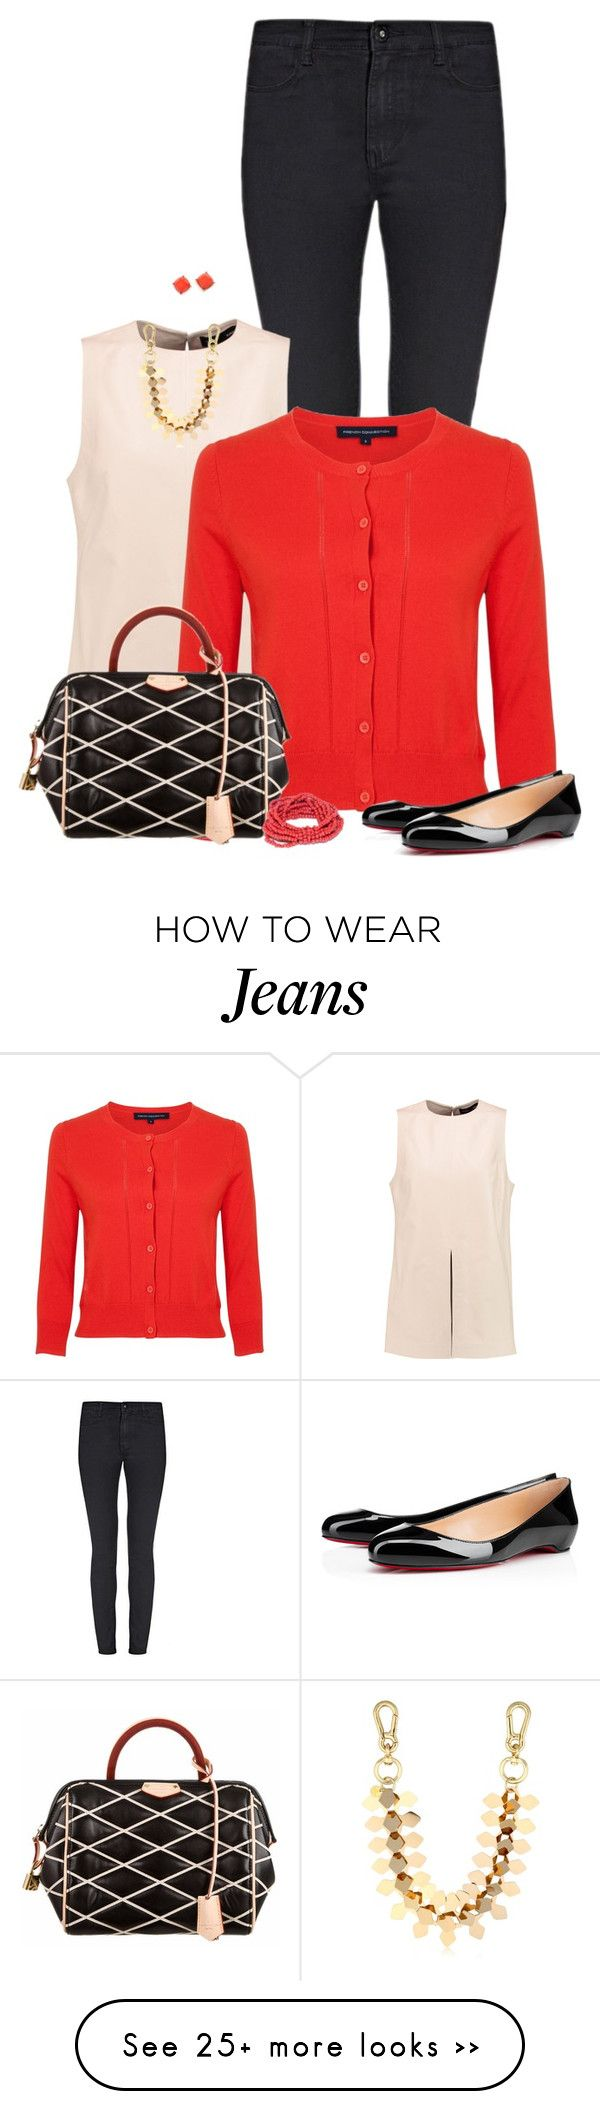 """Leather Top"" by sherry7411 on Polyvore featuring Proenza Schouler, French Connection, Christian Louboutin, Louis Vuitton, BP. and Moxham"